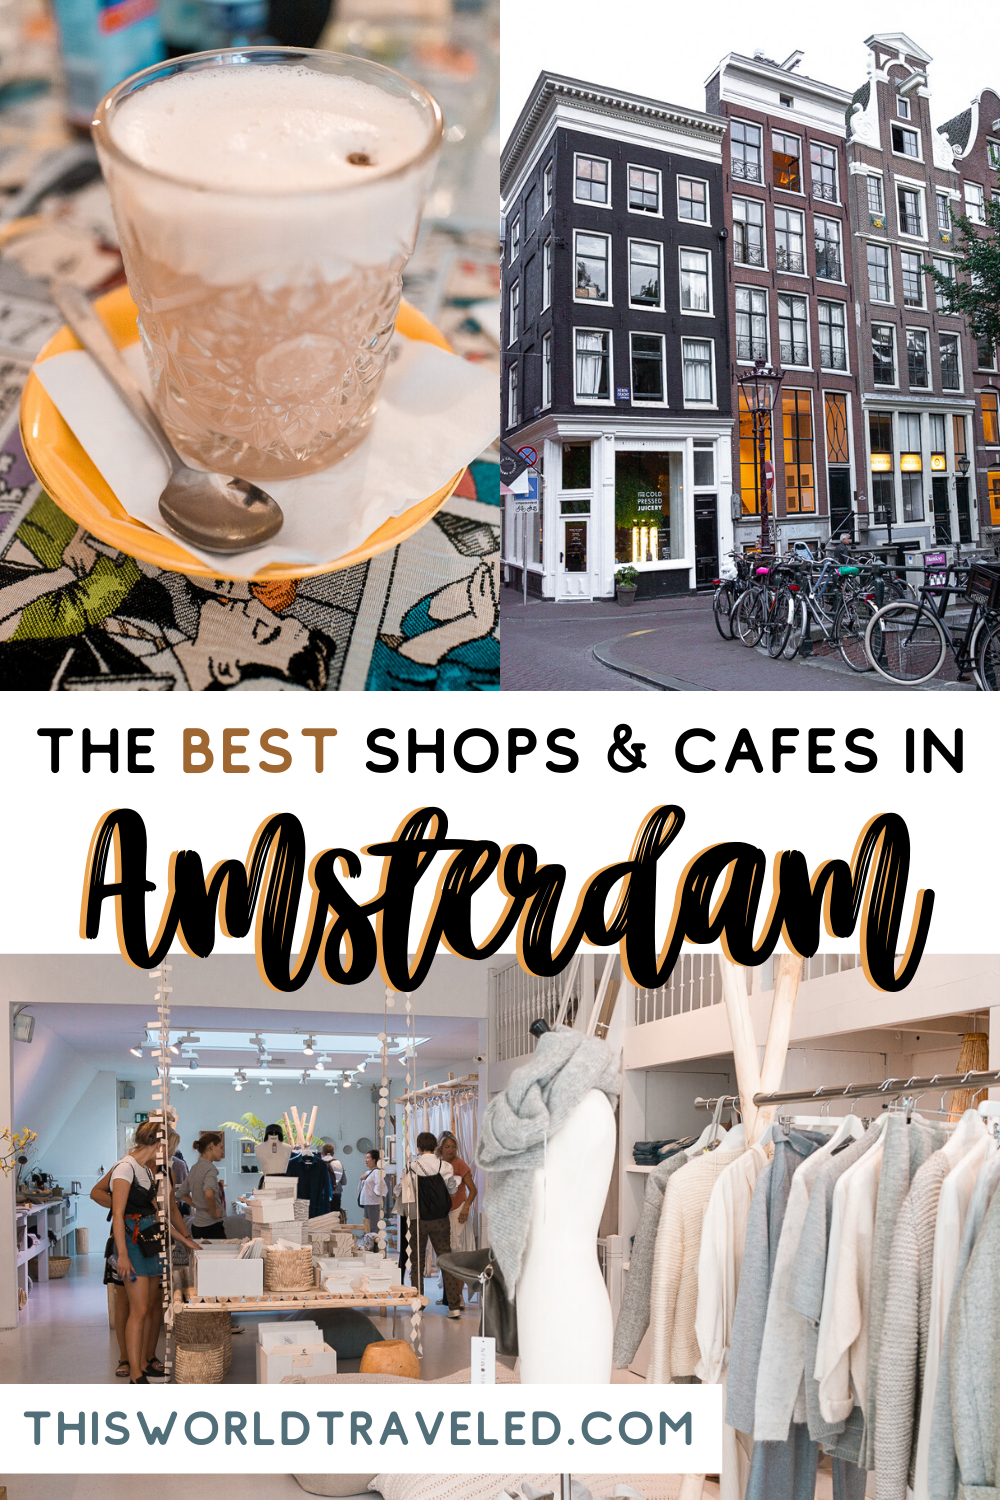 The best shops and cafes in Amsterdam